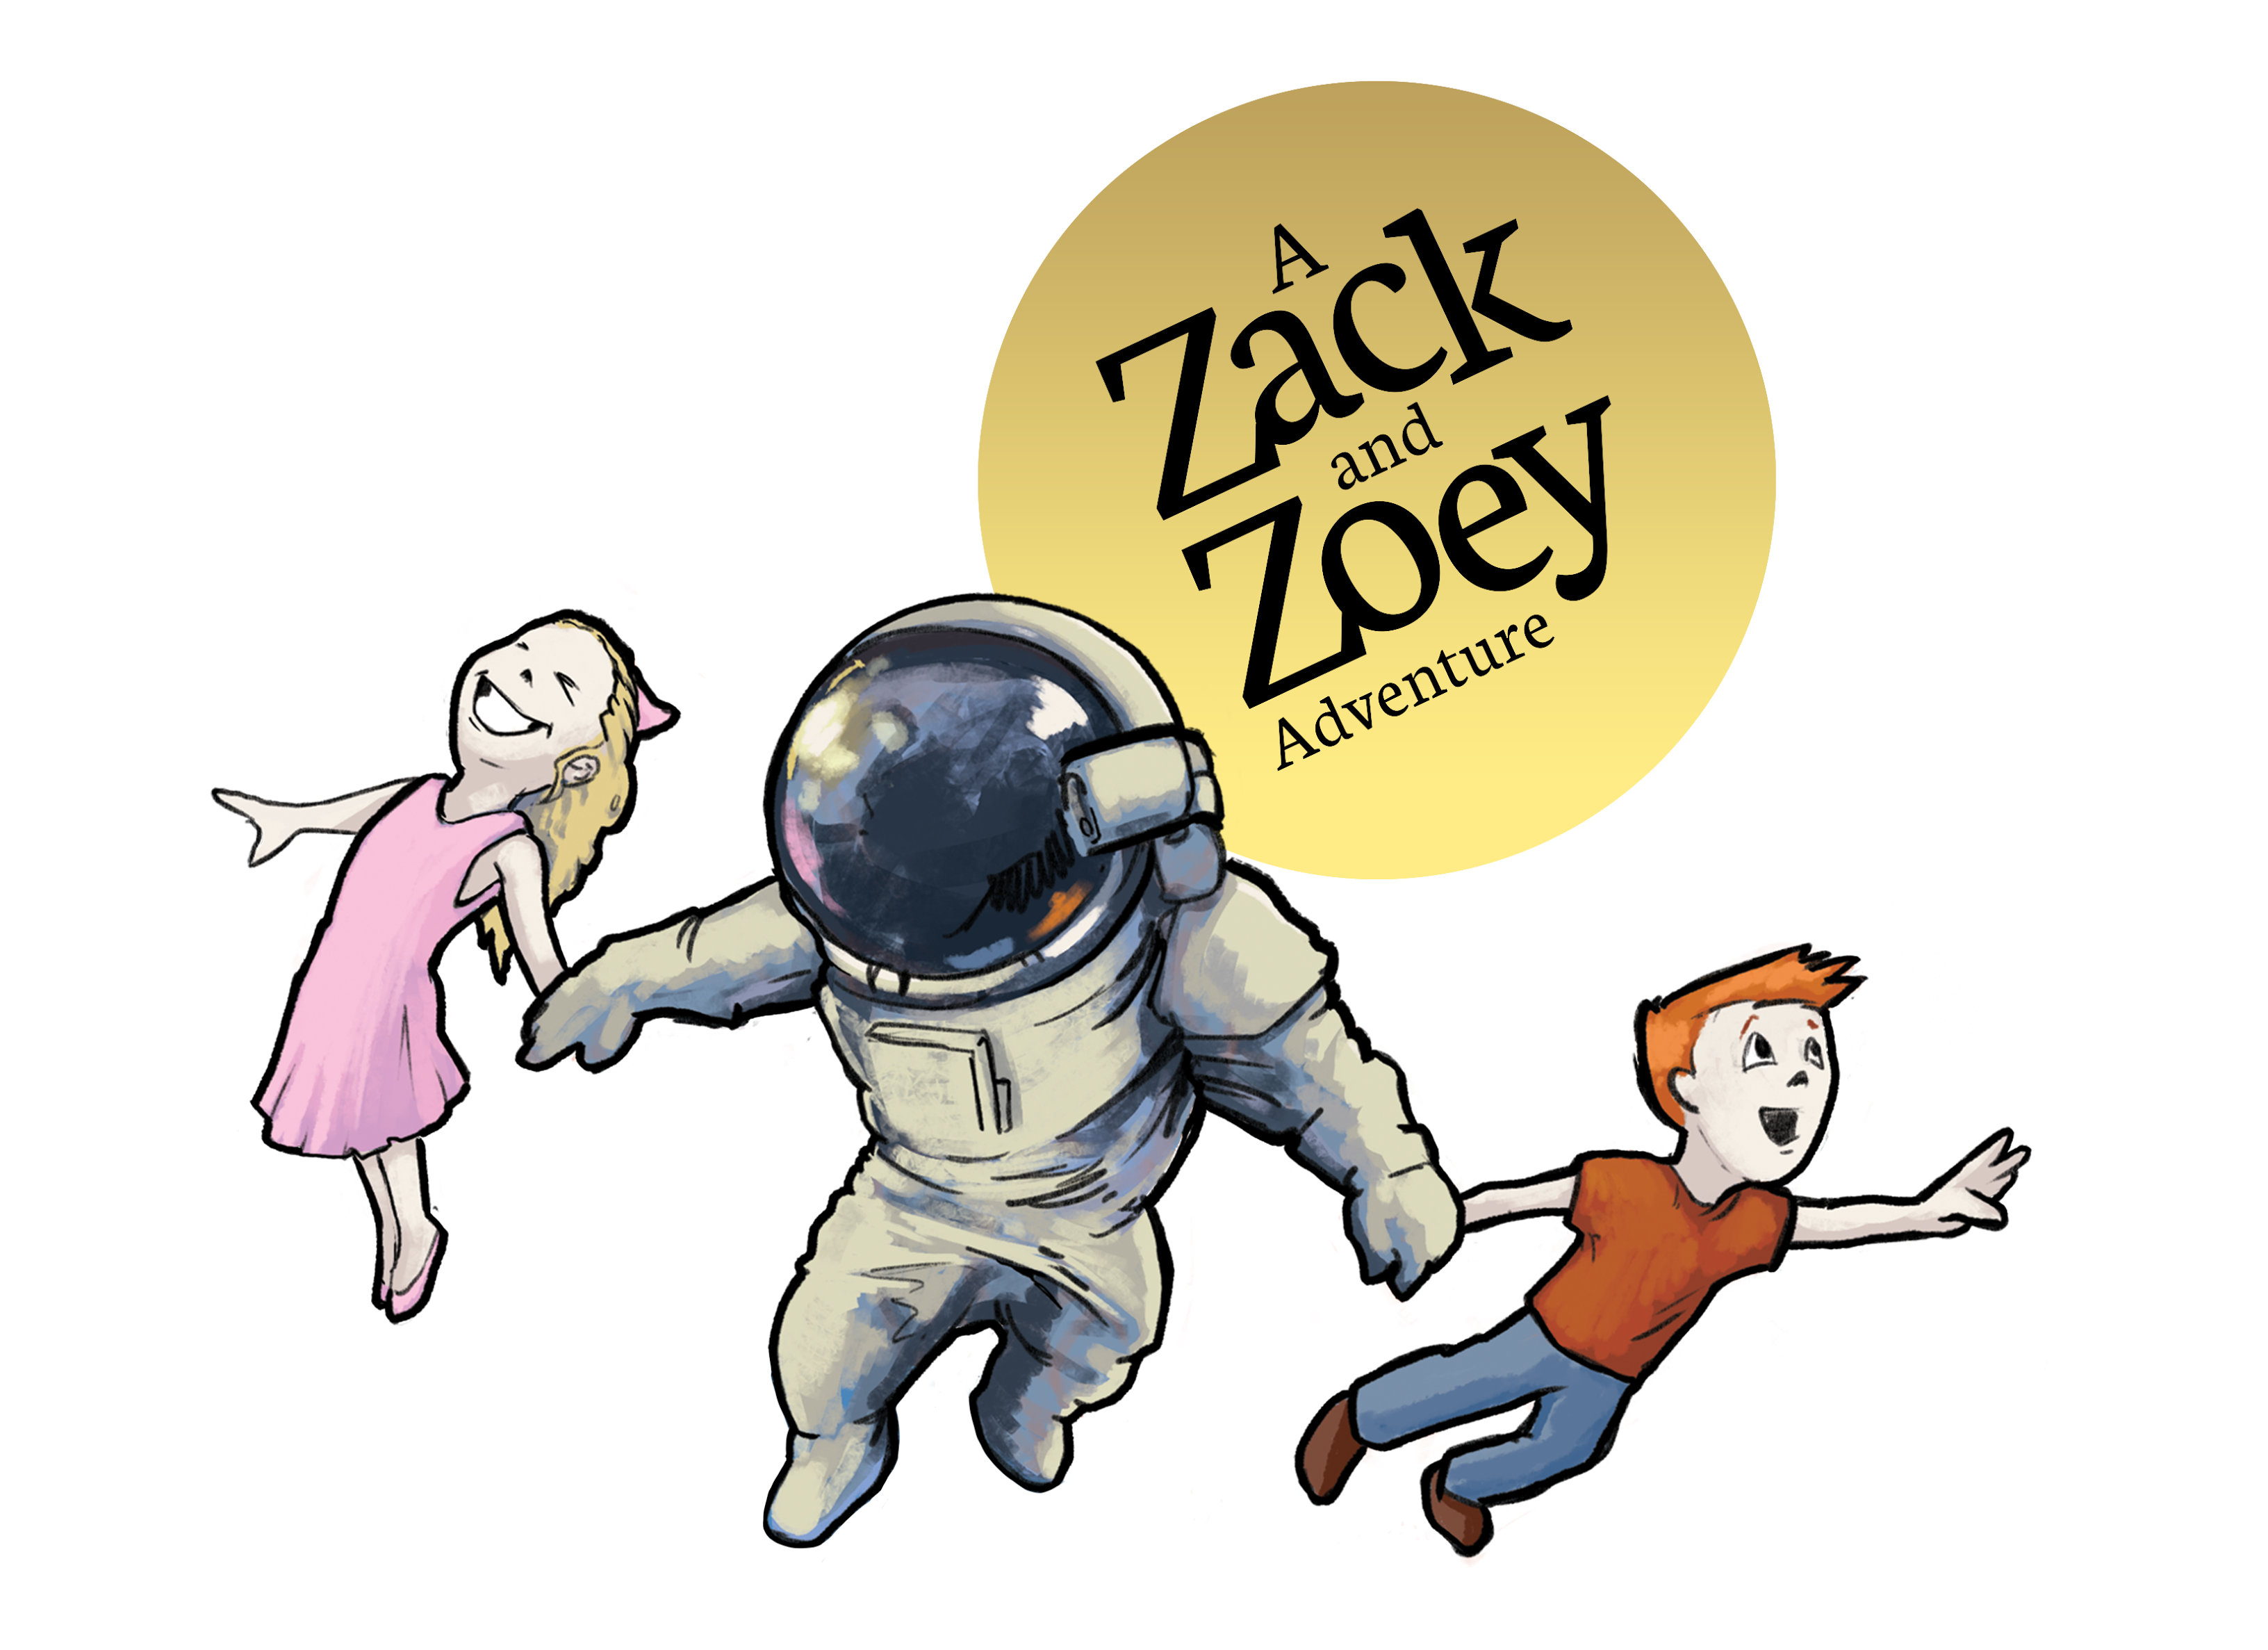 Zach and Zoey Adventures